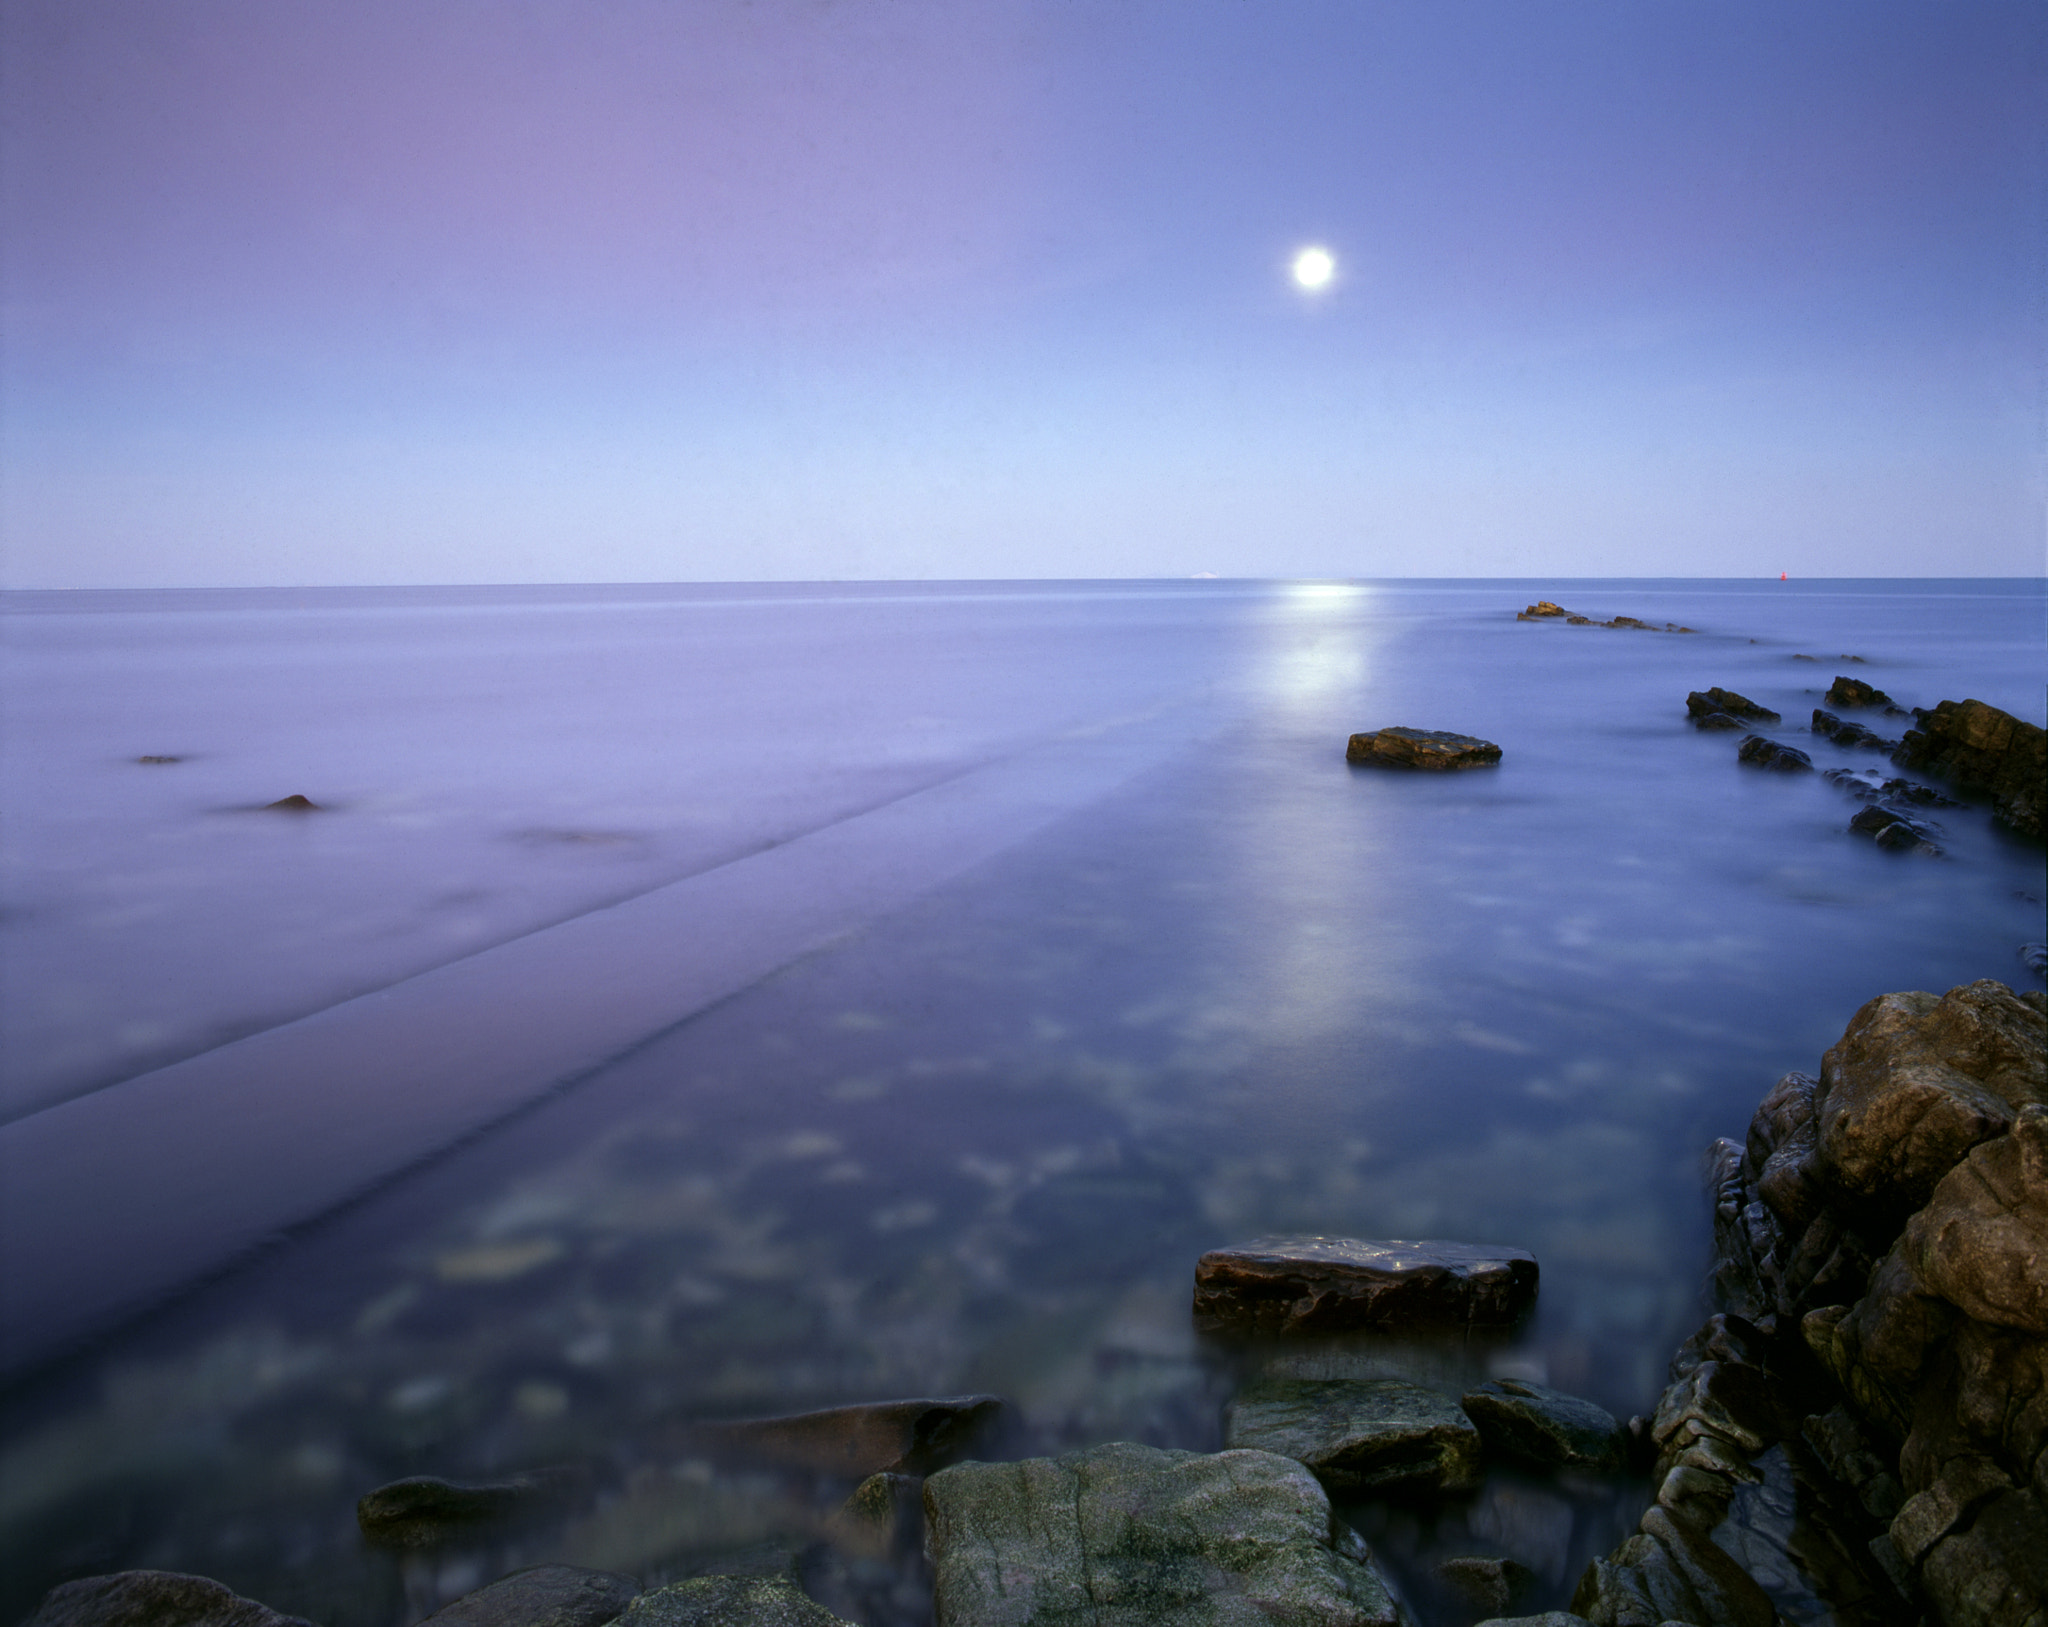 Photograph Moonrise by Sean Lewis on 500px